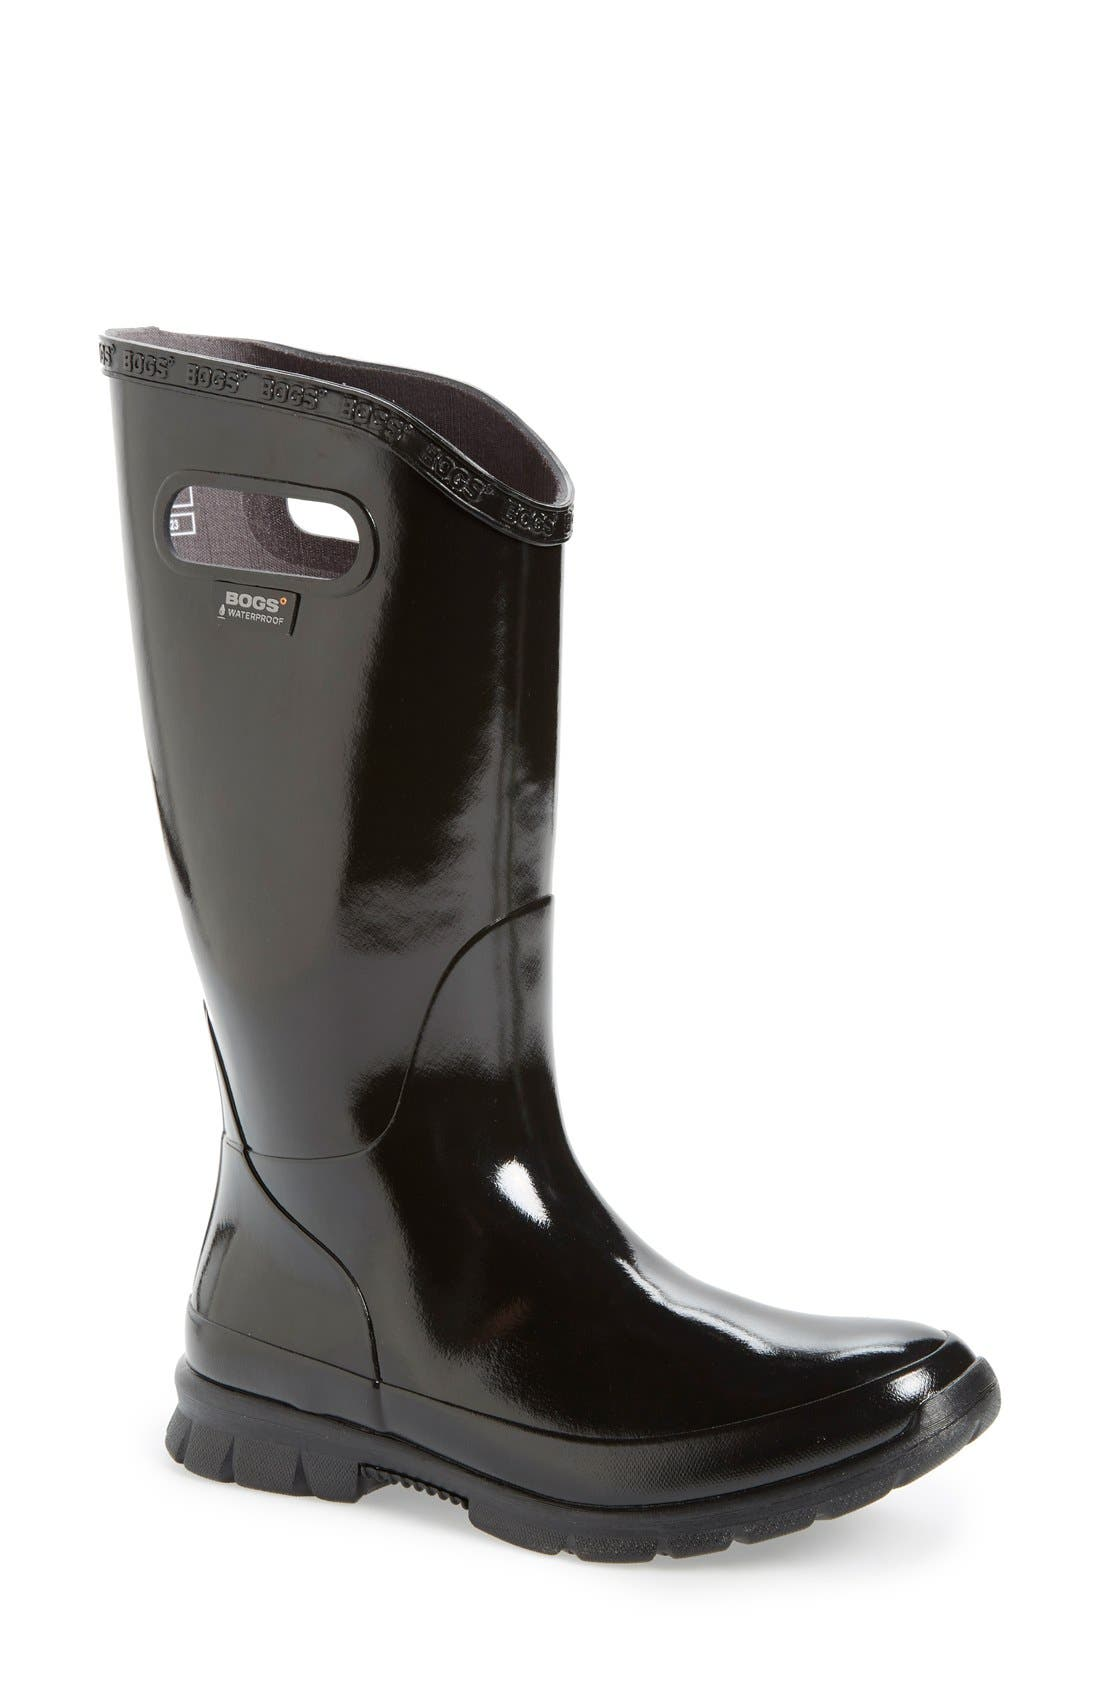 BOGS 'Berkley' Waterproof Rain Boot